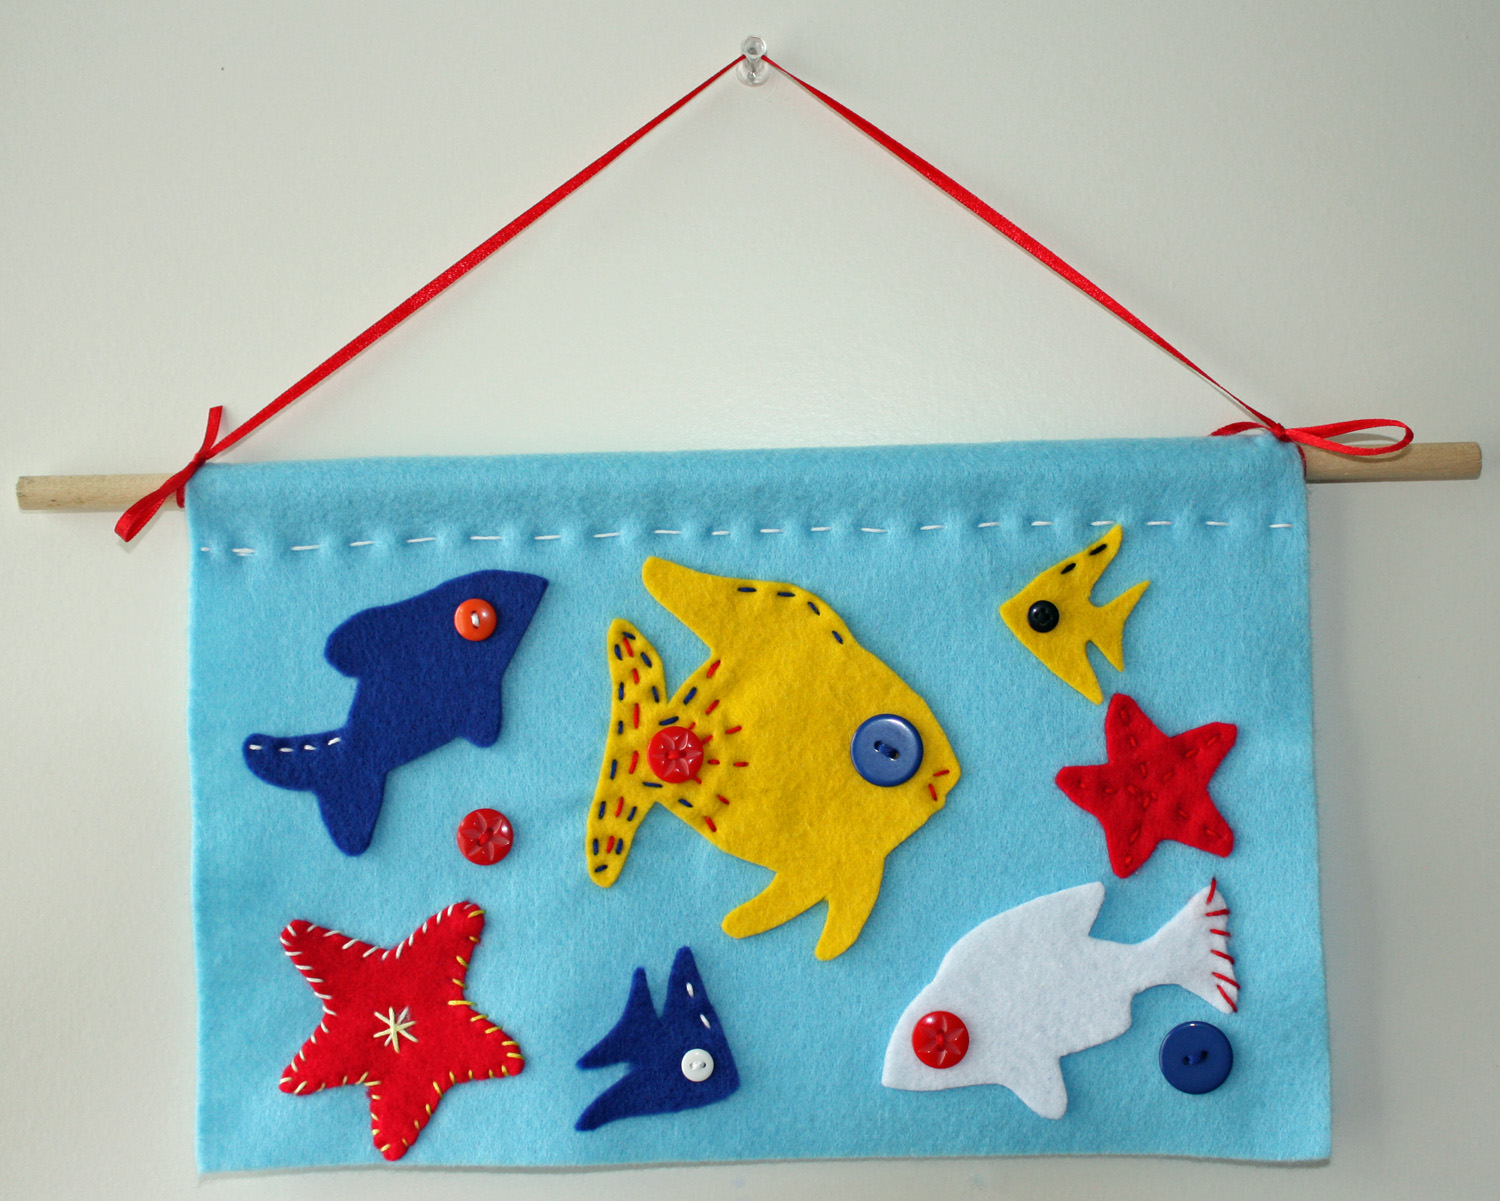 Wall Hanging Craft Ideas For Kids Part - 29: Felt Fish Wall-Hanging Tutorial - Fun And Easy To Do.